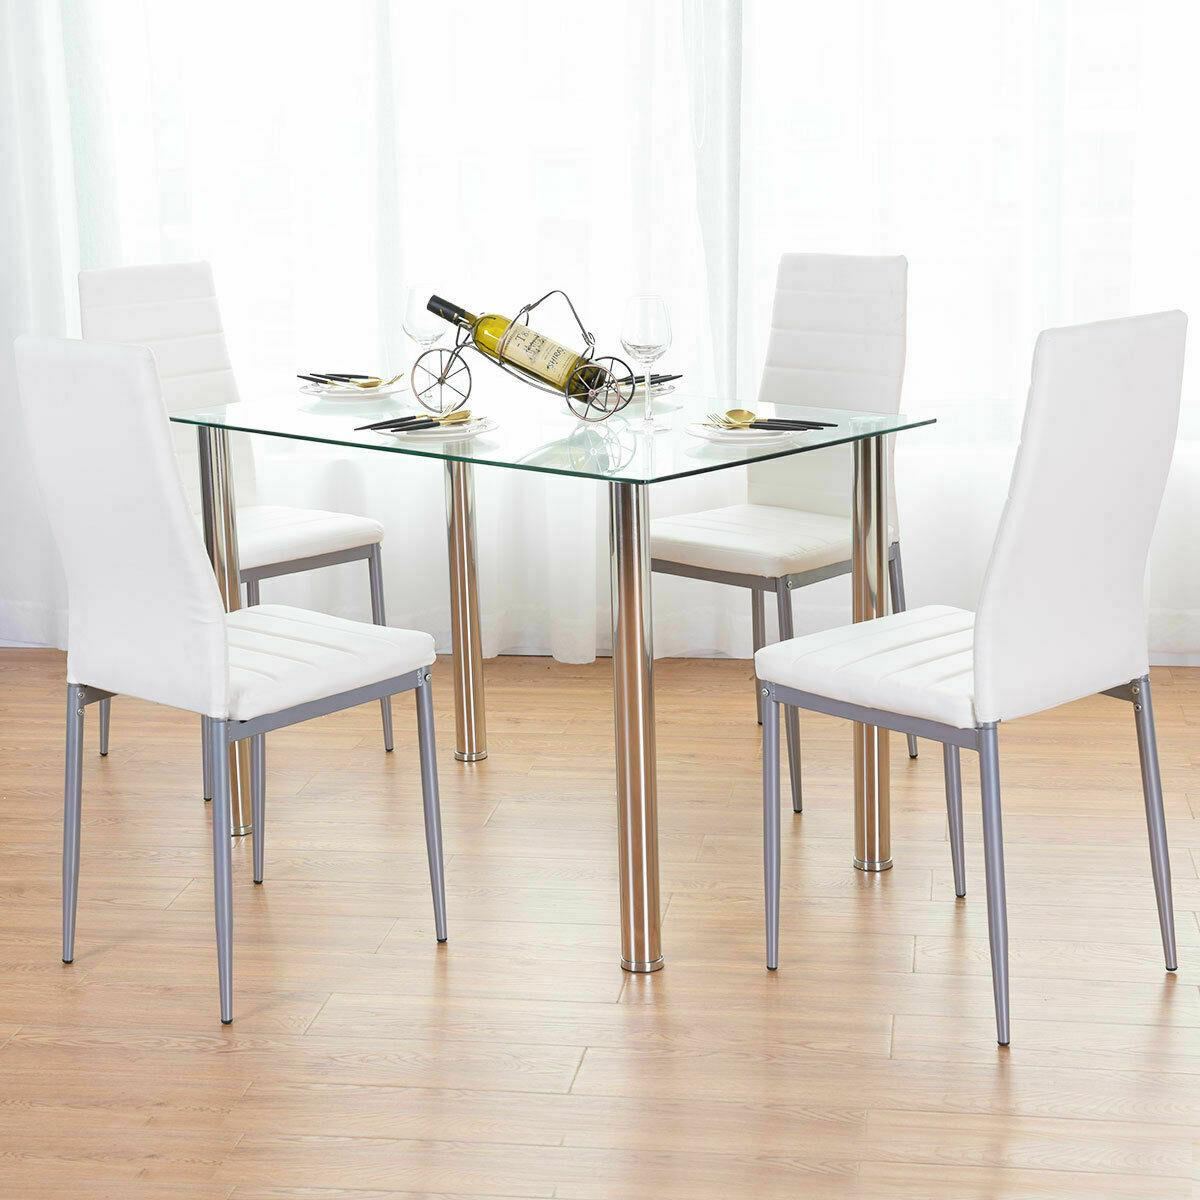 Details about 5 Piece Dining Table Set White Glass and 4 Chairs Faux  Leather Kitchen Furniture